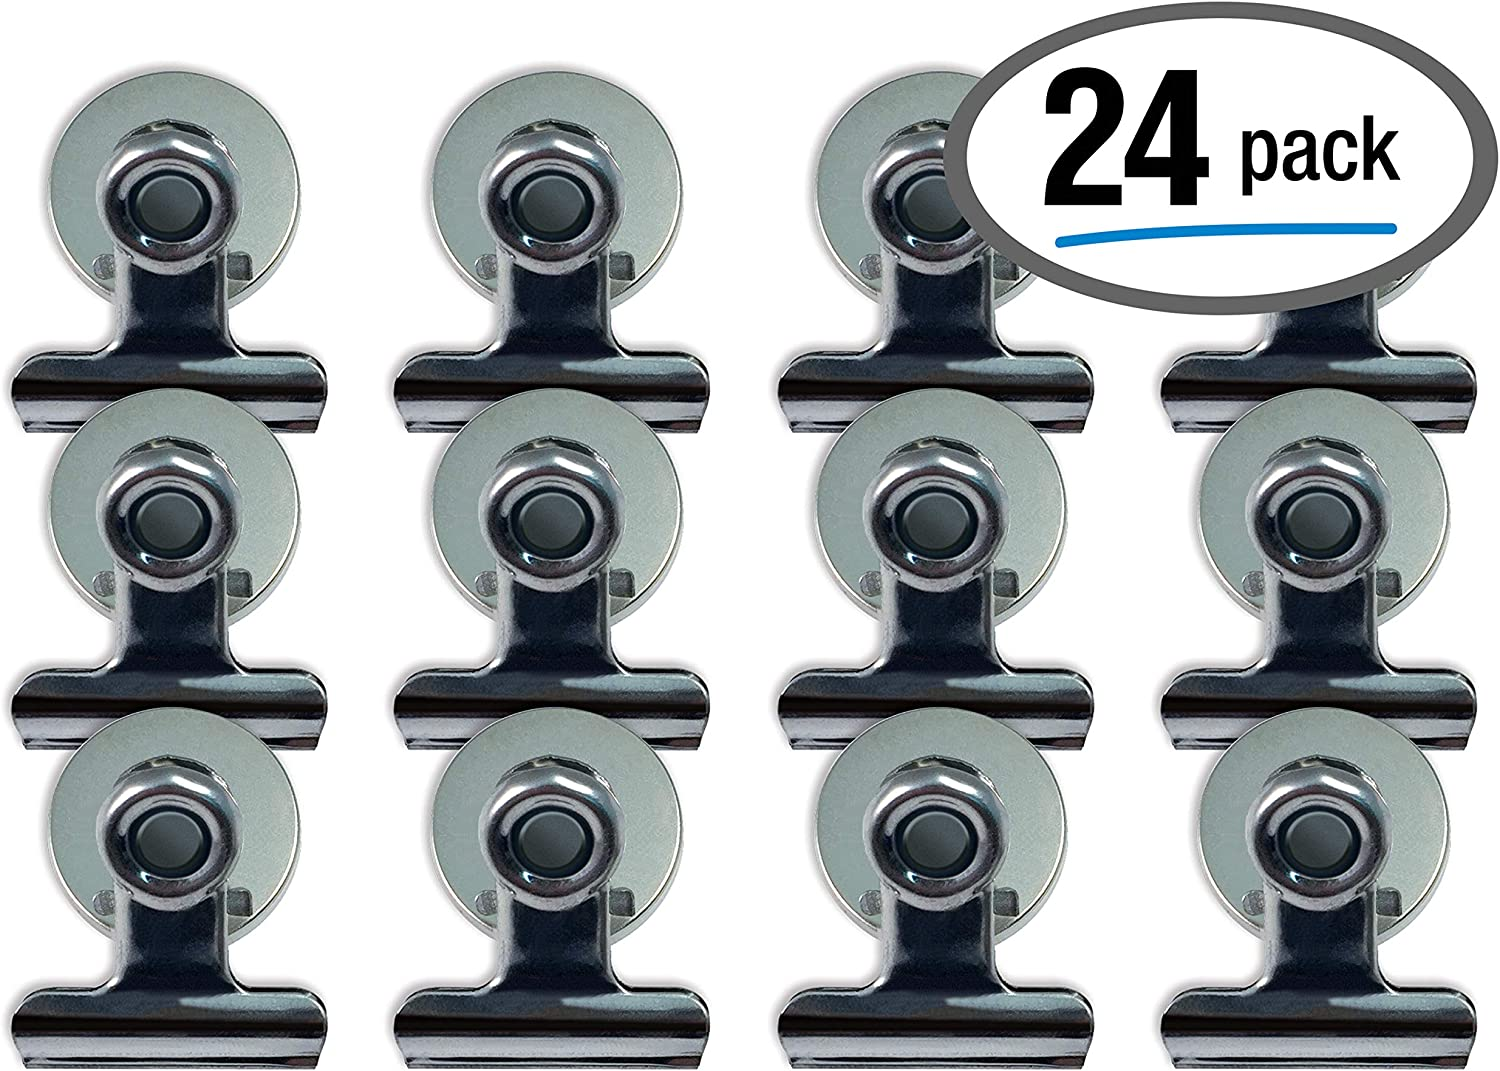 Magnetic Bulldog Clips, 24 Pack, by Better Office Products, Stainless Steel, 1.2 Inch, Bulldog-Style with Magnets, 24 Pieces